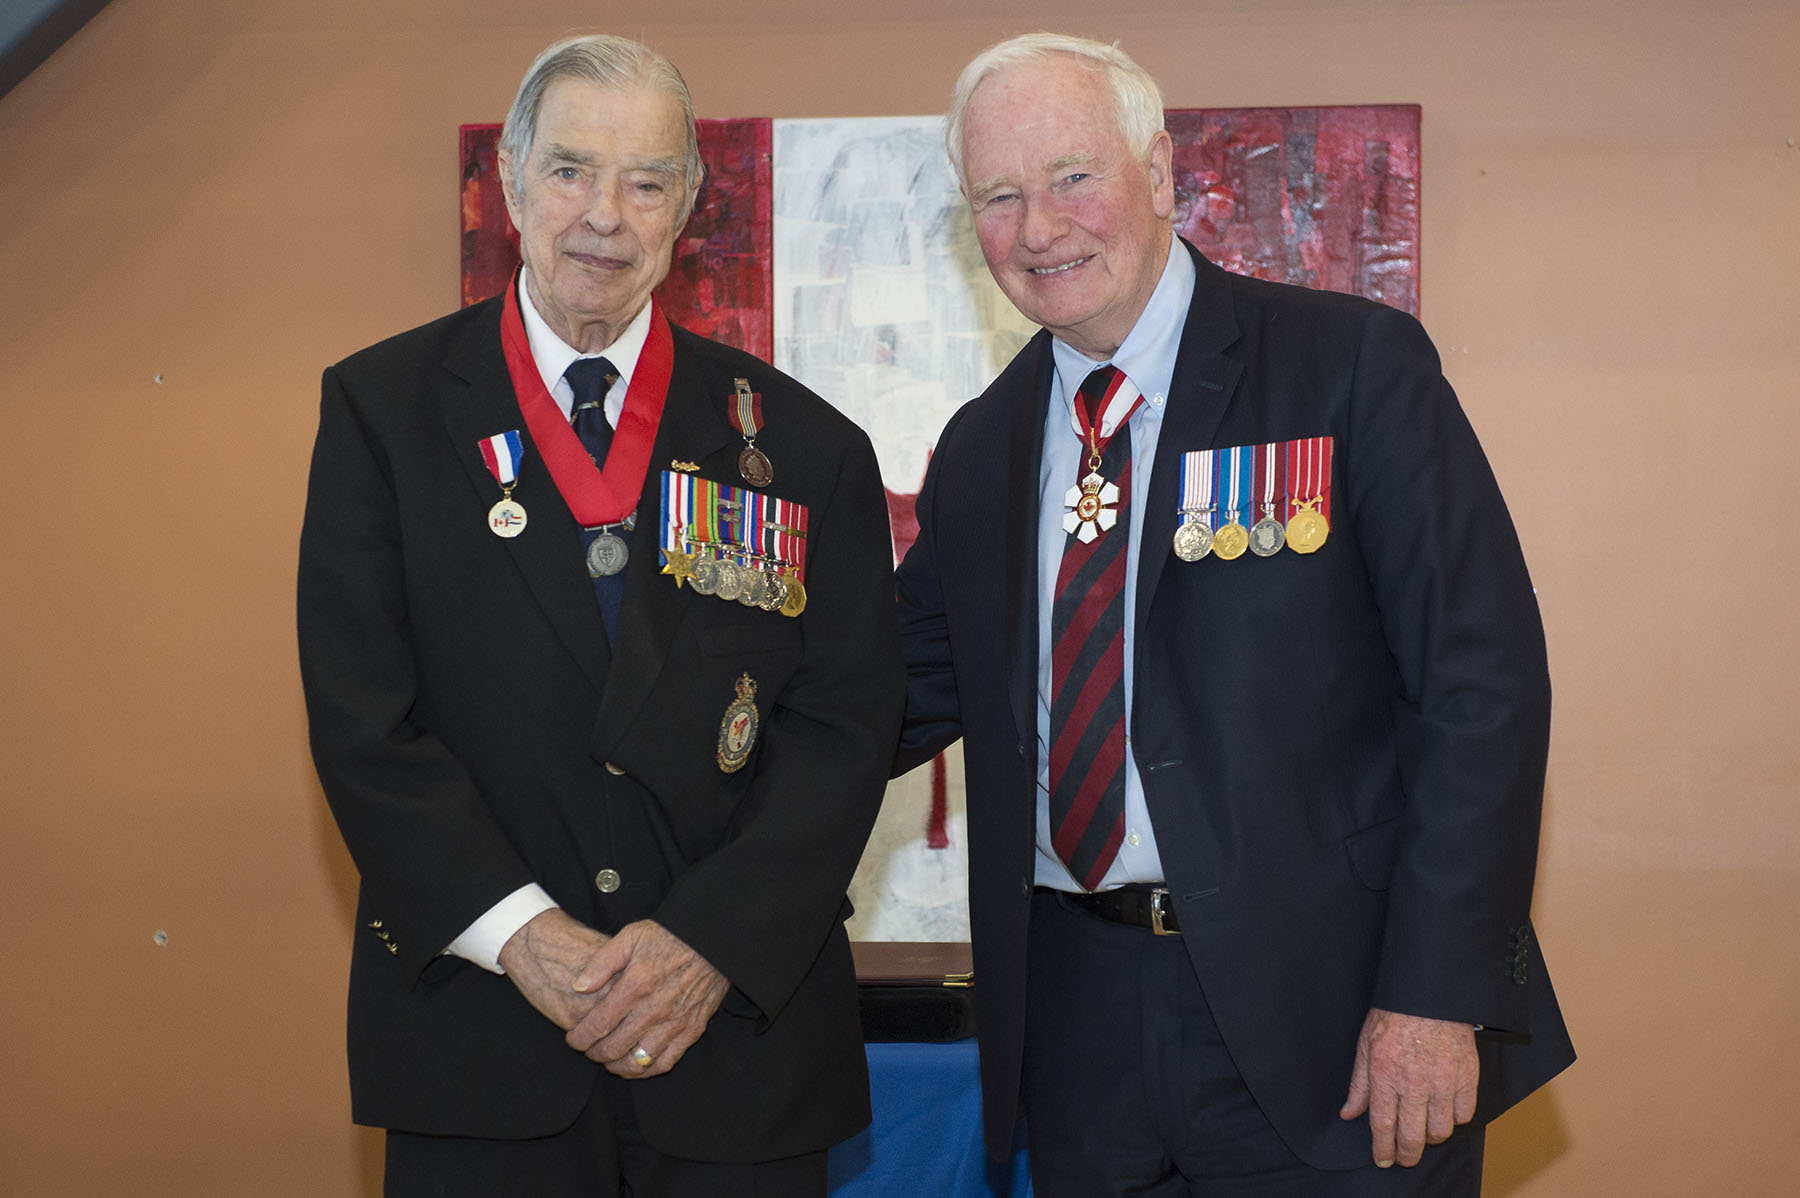 Mr. François Savard was presented the Sovereign's Medal for Volunteers for his work at the Perley and Rideau Veterans' Home. For the past 25 years, he has regularly visited residents in long-term care and helped to chronicle and preserve veterans' stories.